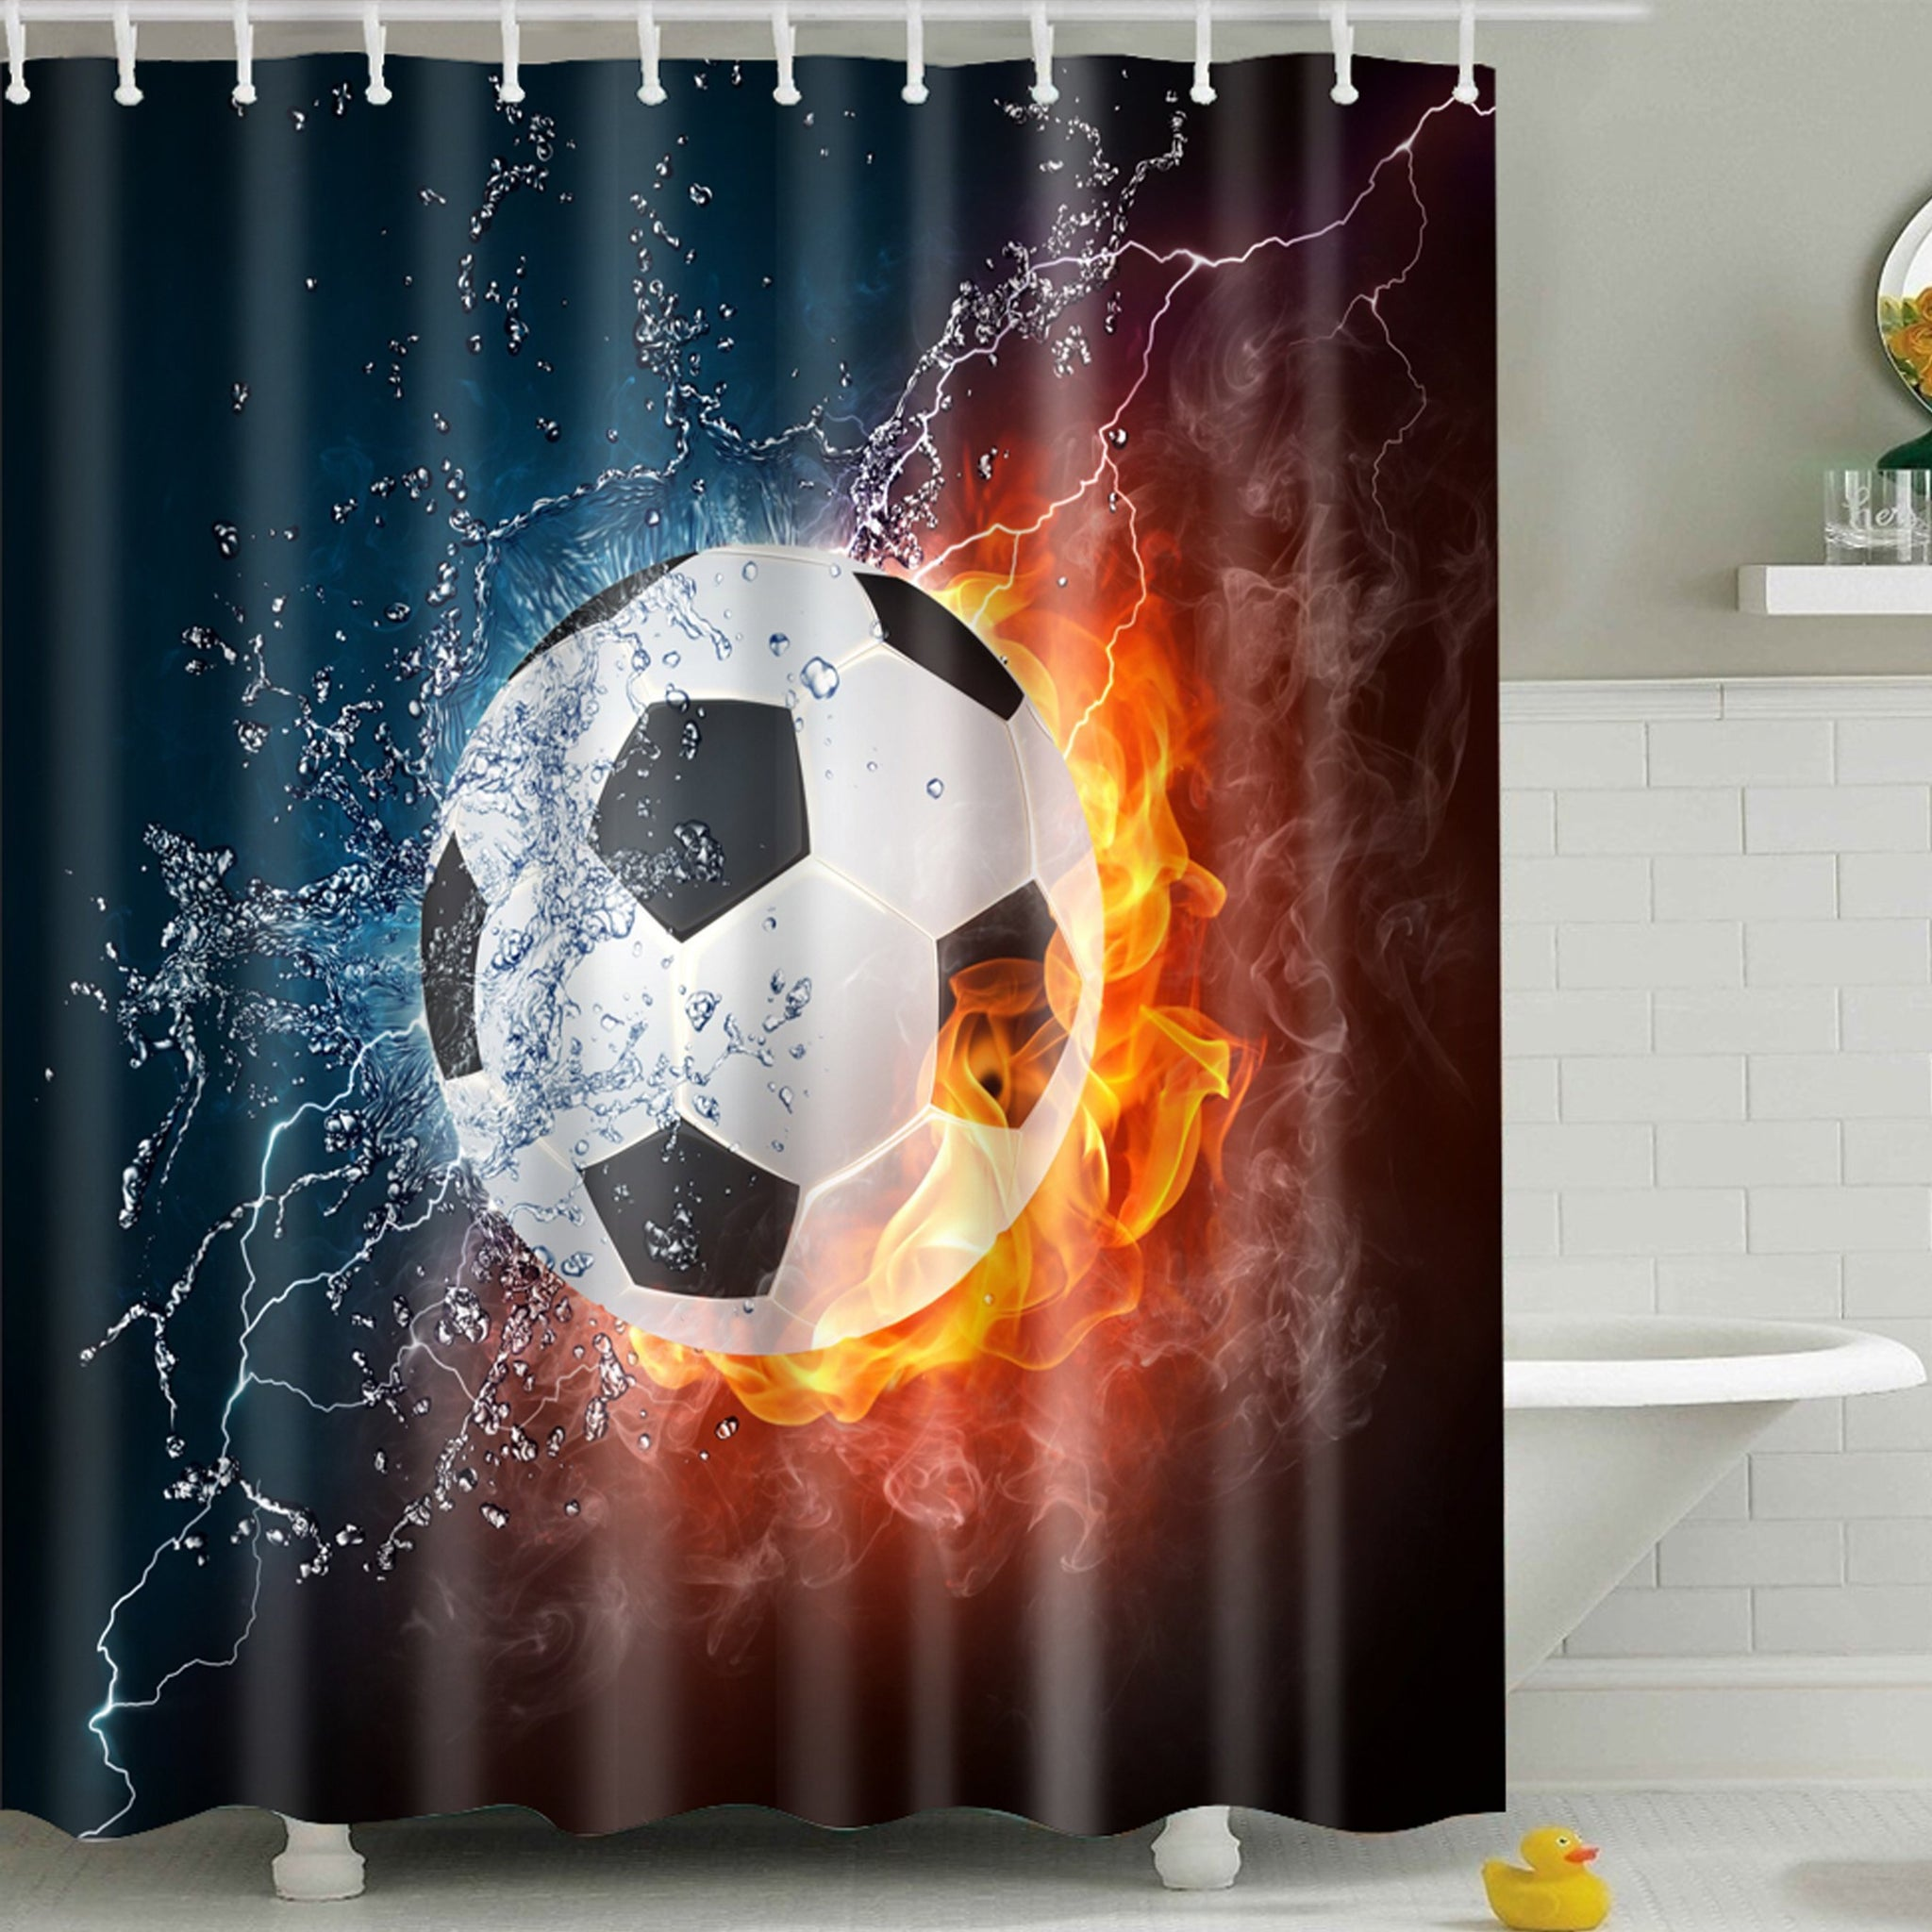 Beau Ice And Fire Football Sports Soccer Shower Curtain